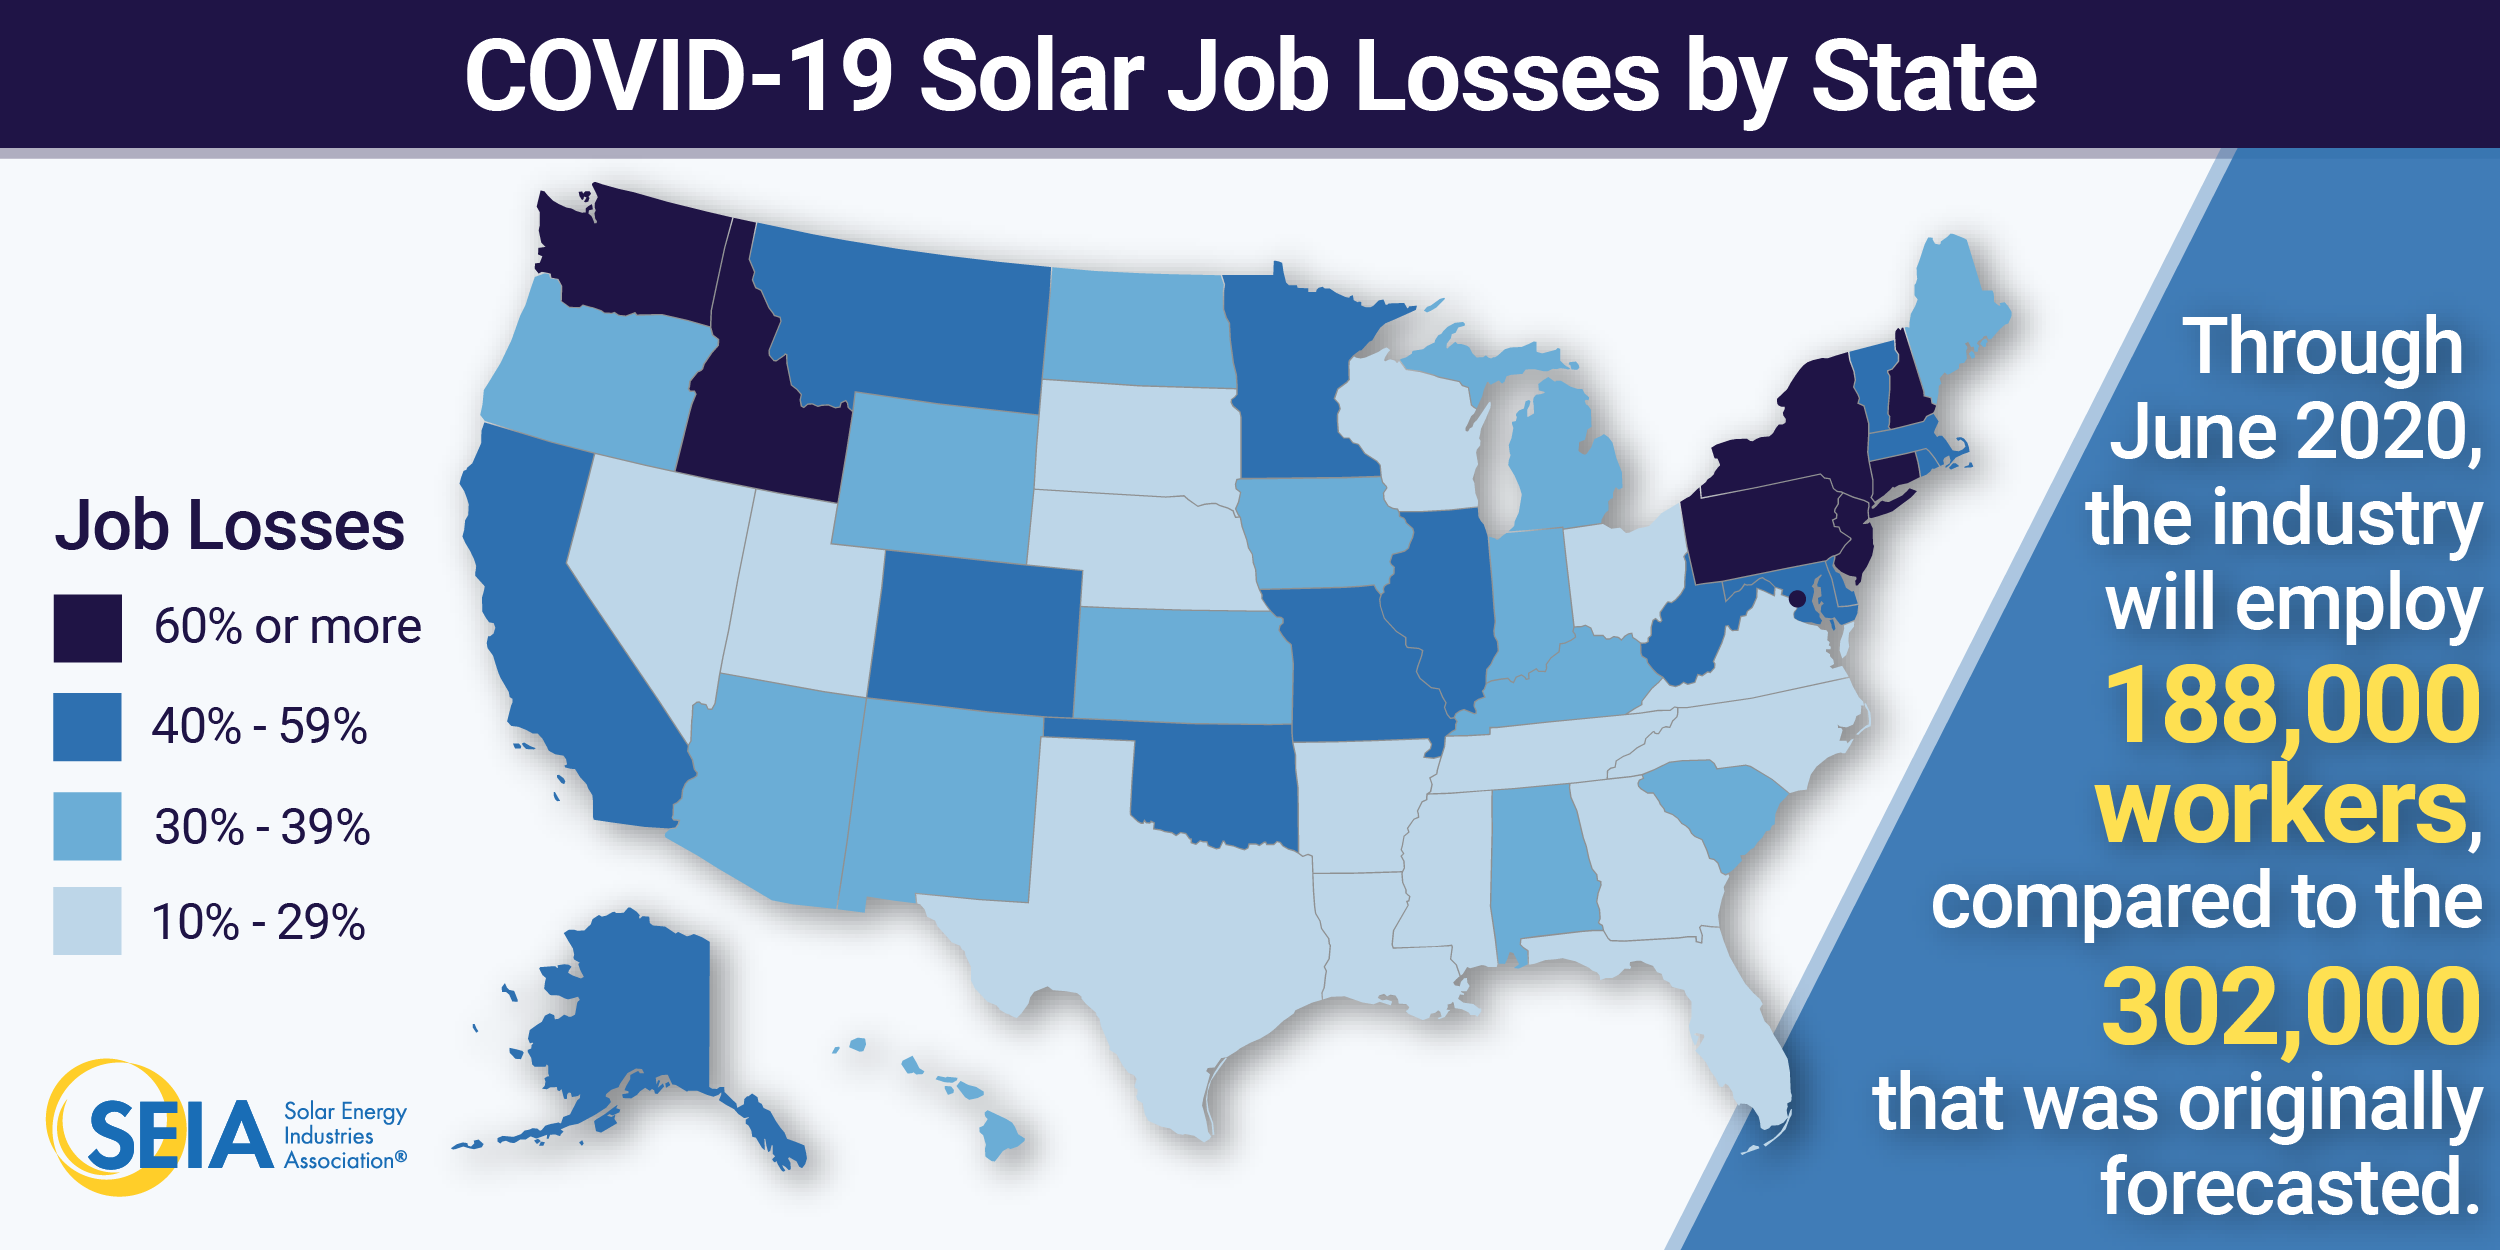 California Accounts For One Third Of All U S Solar Jobs Lost From Pre Covid Forecasts Yubanet